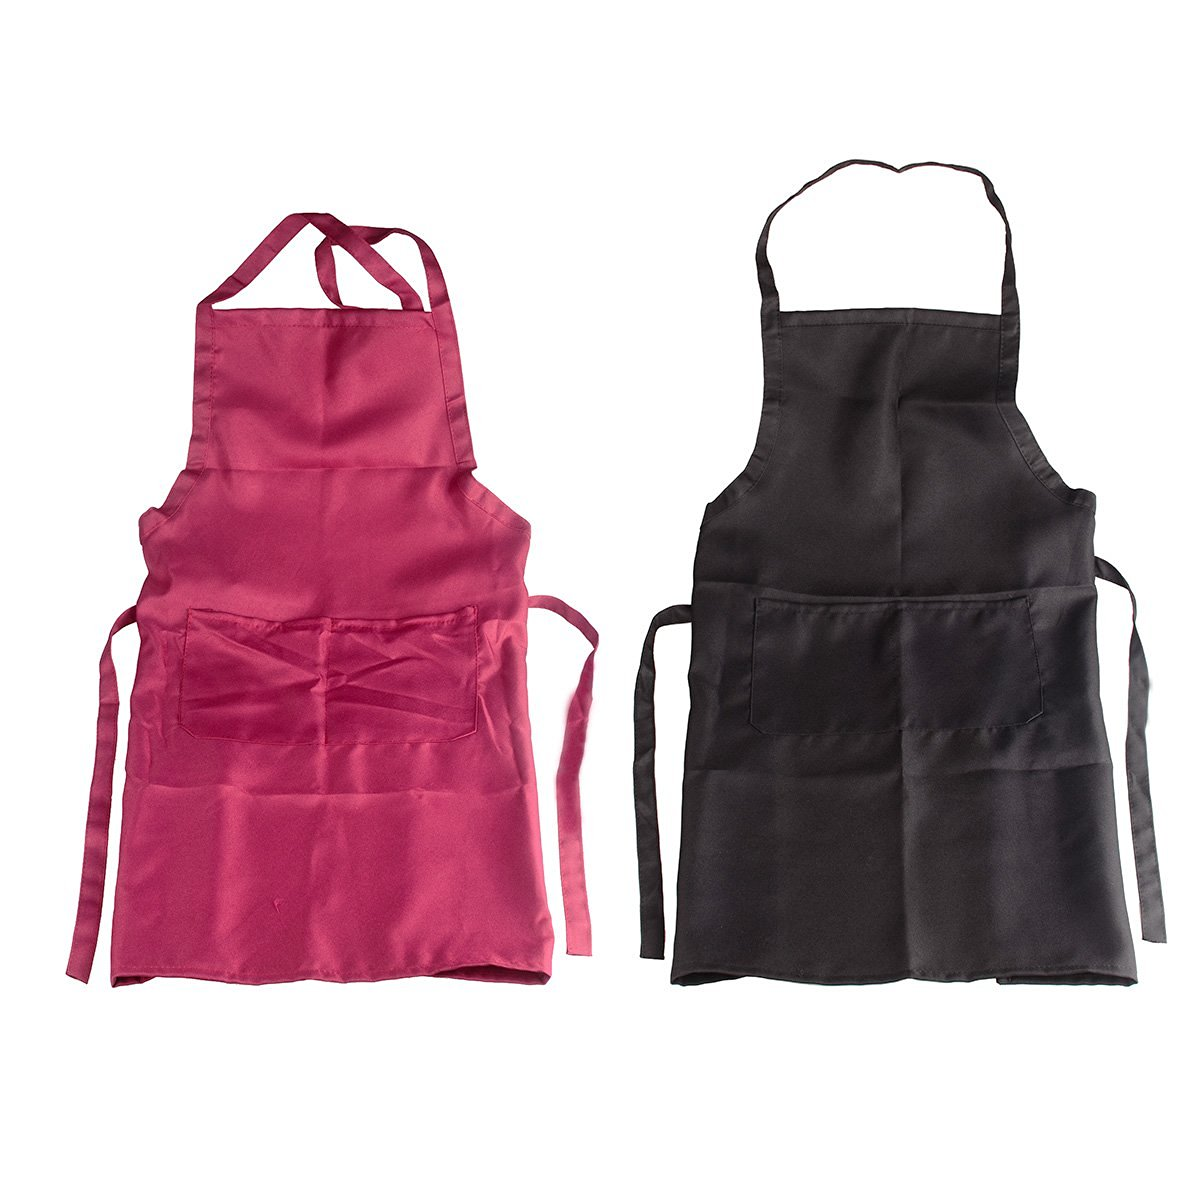 Flammi 2-Pack Professional Bib Apron for Bistro Garden Craftsmen Pure Color Work Aprons (28 x 22.8 inches ) (Black + Burgundy)